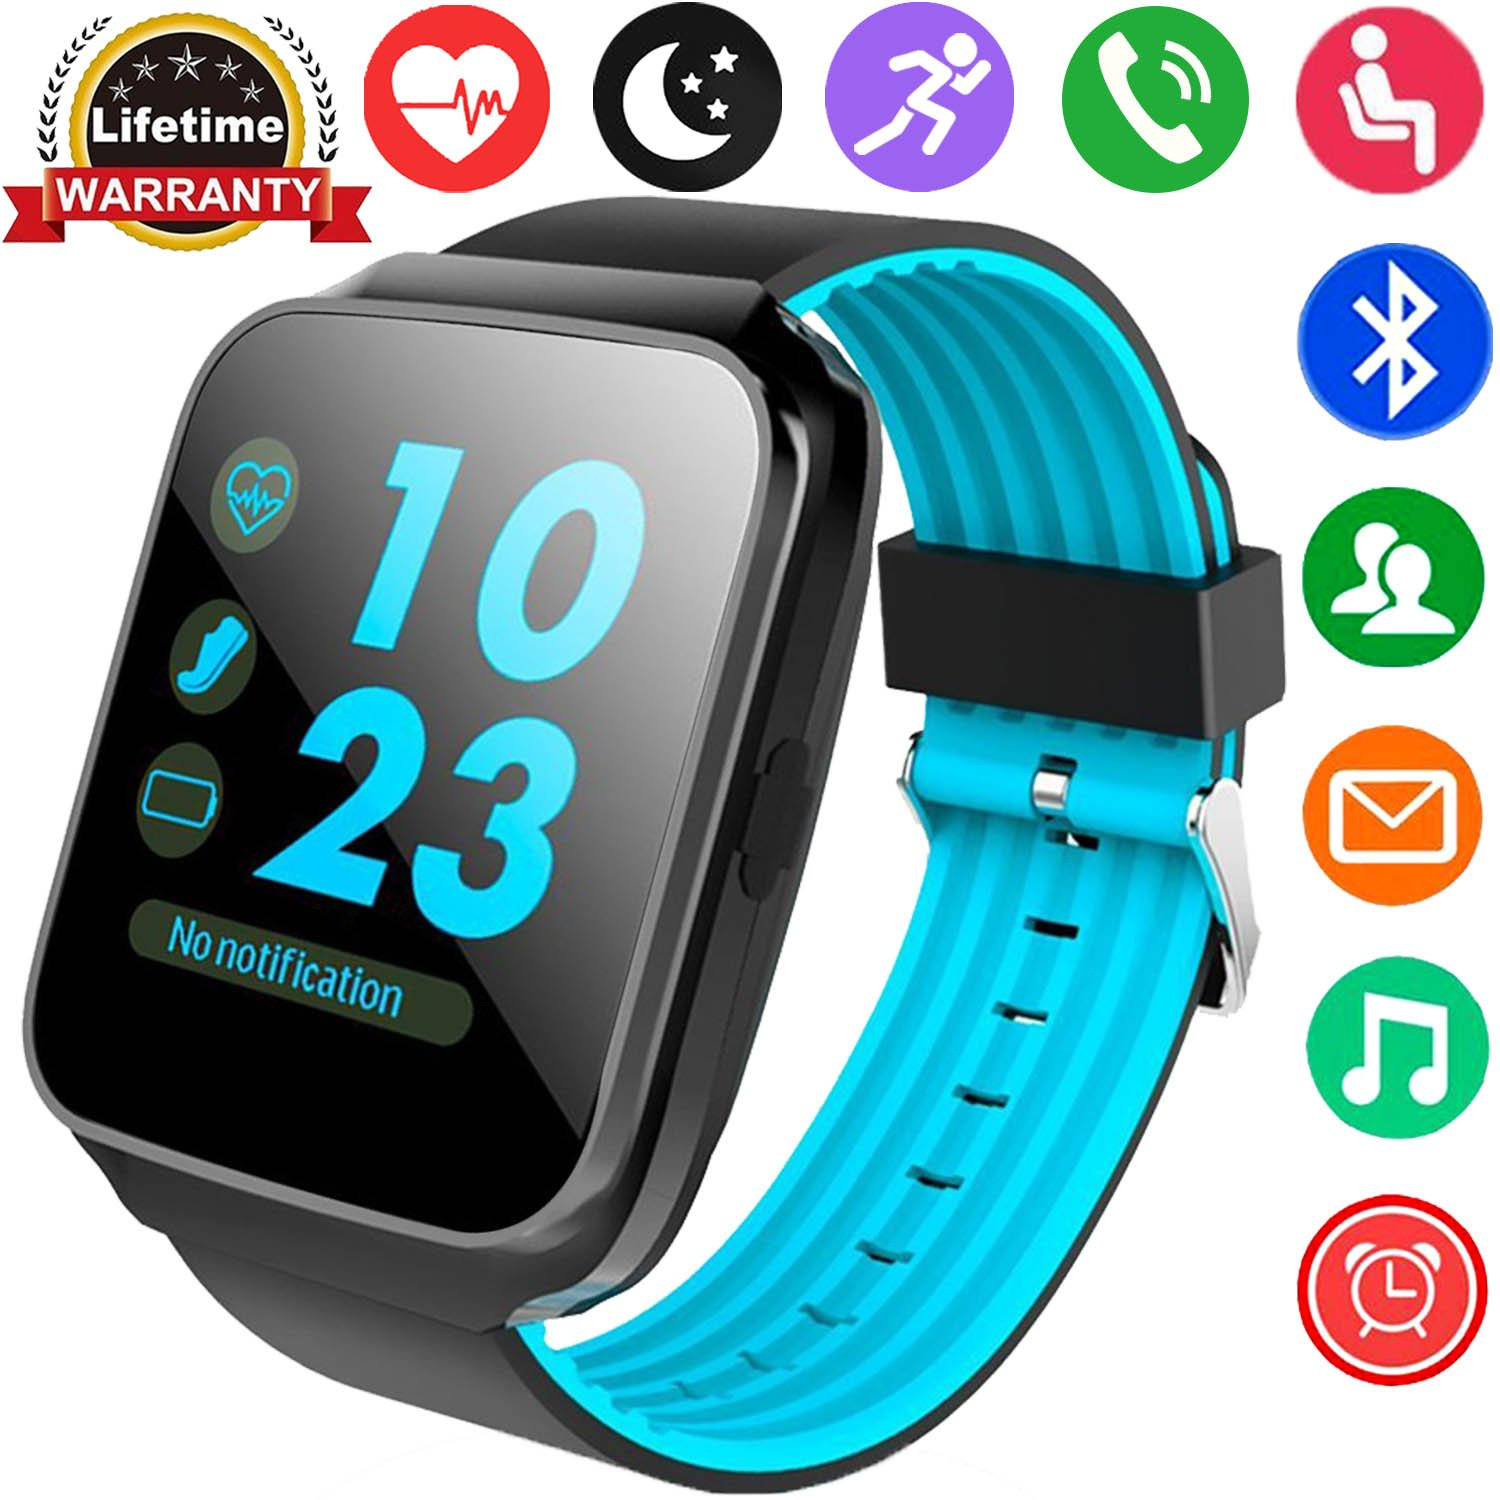 Fitness Tracker Smart Watches Heart Rate Blood Pressure Monitor Men Women Kids Boys Girls Gift Sport Watch GPS Tracker Pedometer Stopwatch Calorie Outdoor Wristband (Blue)